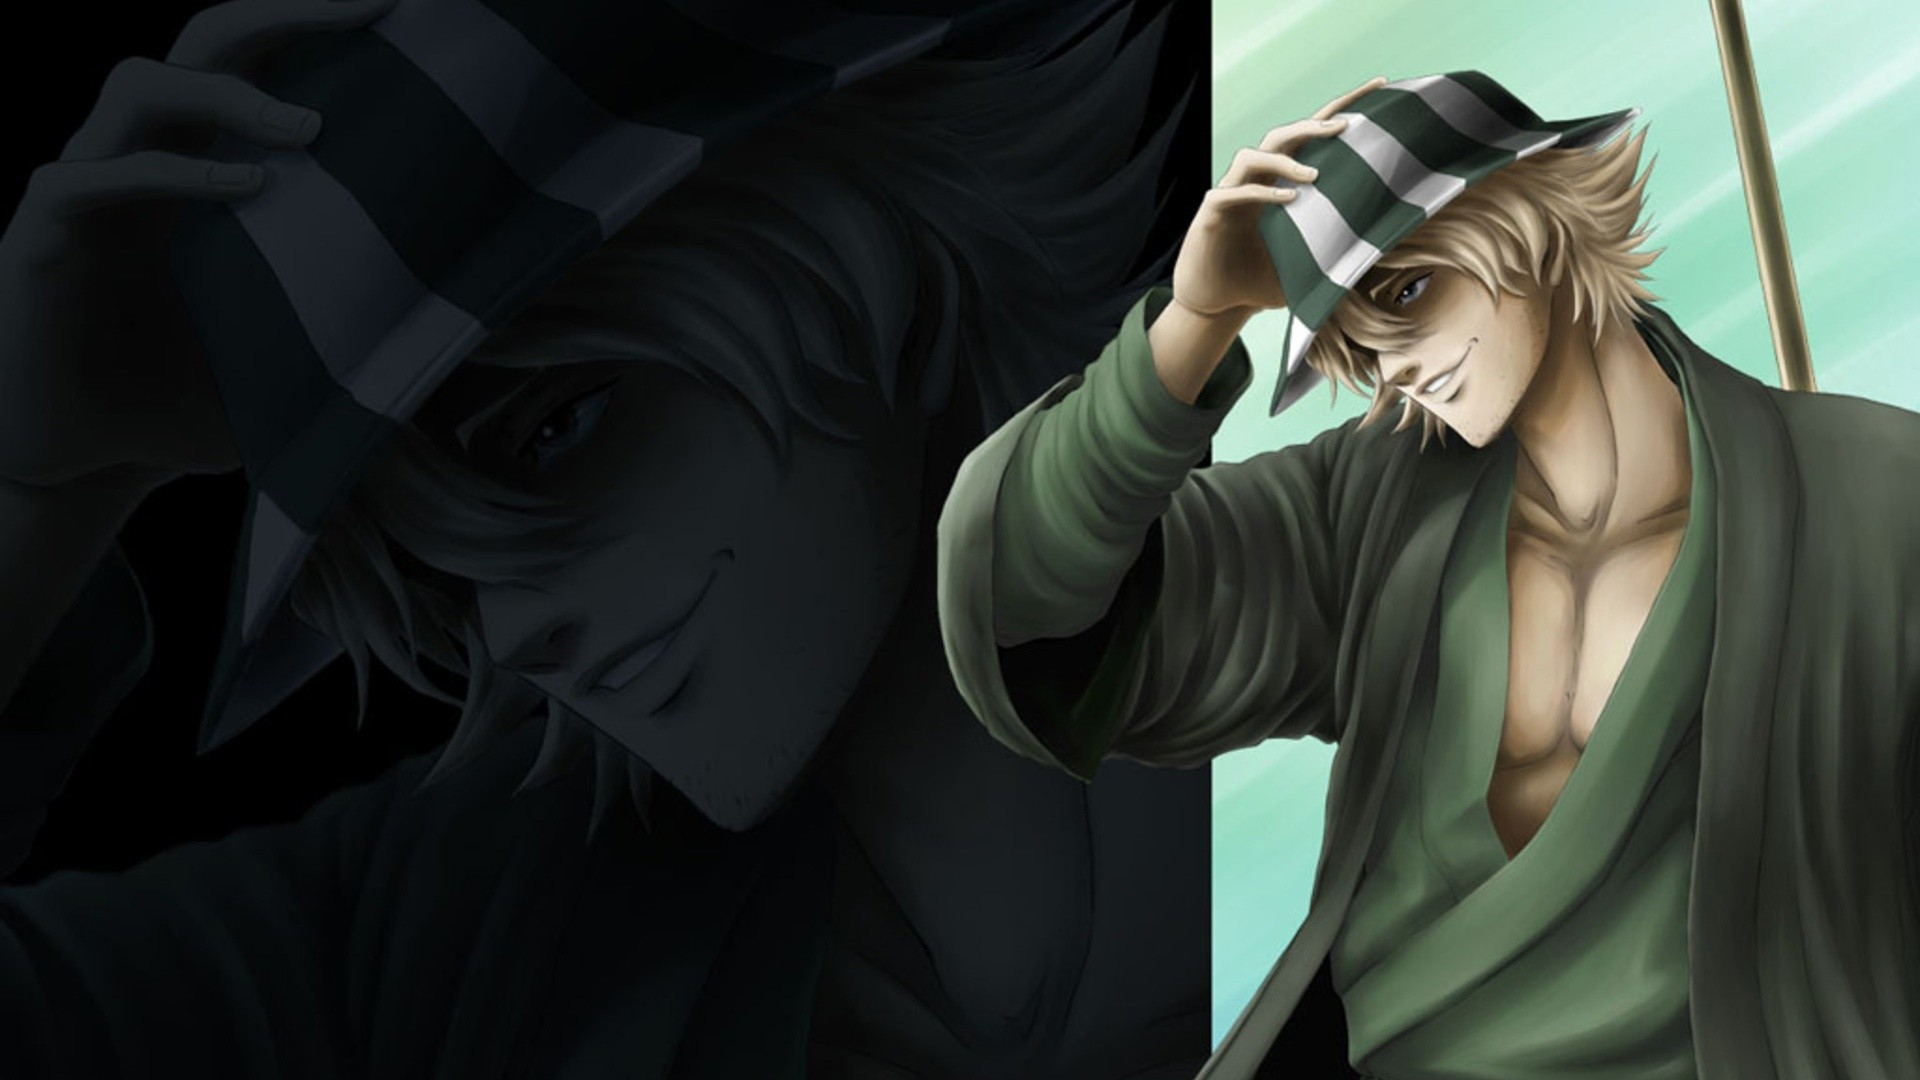 Good Wallpaper High Quality Bleach - hd-wallpapers-of-bleach-22  Perfect Image Reference_979751.jpg